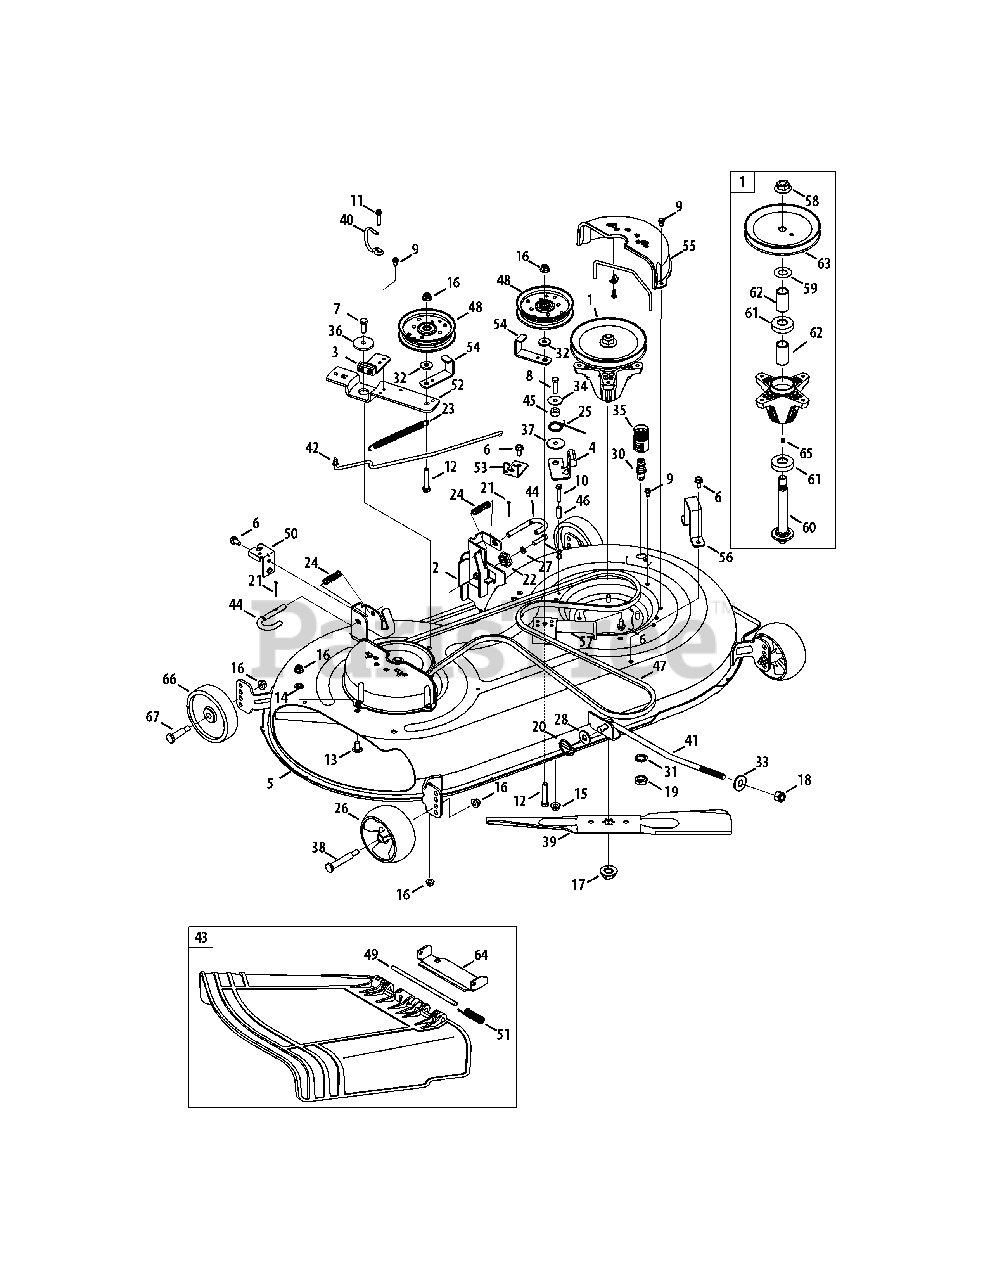 Cub Cadet Parts on the Mower Deck 42-inch Diagram for LTX